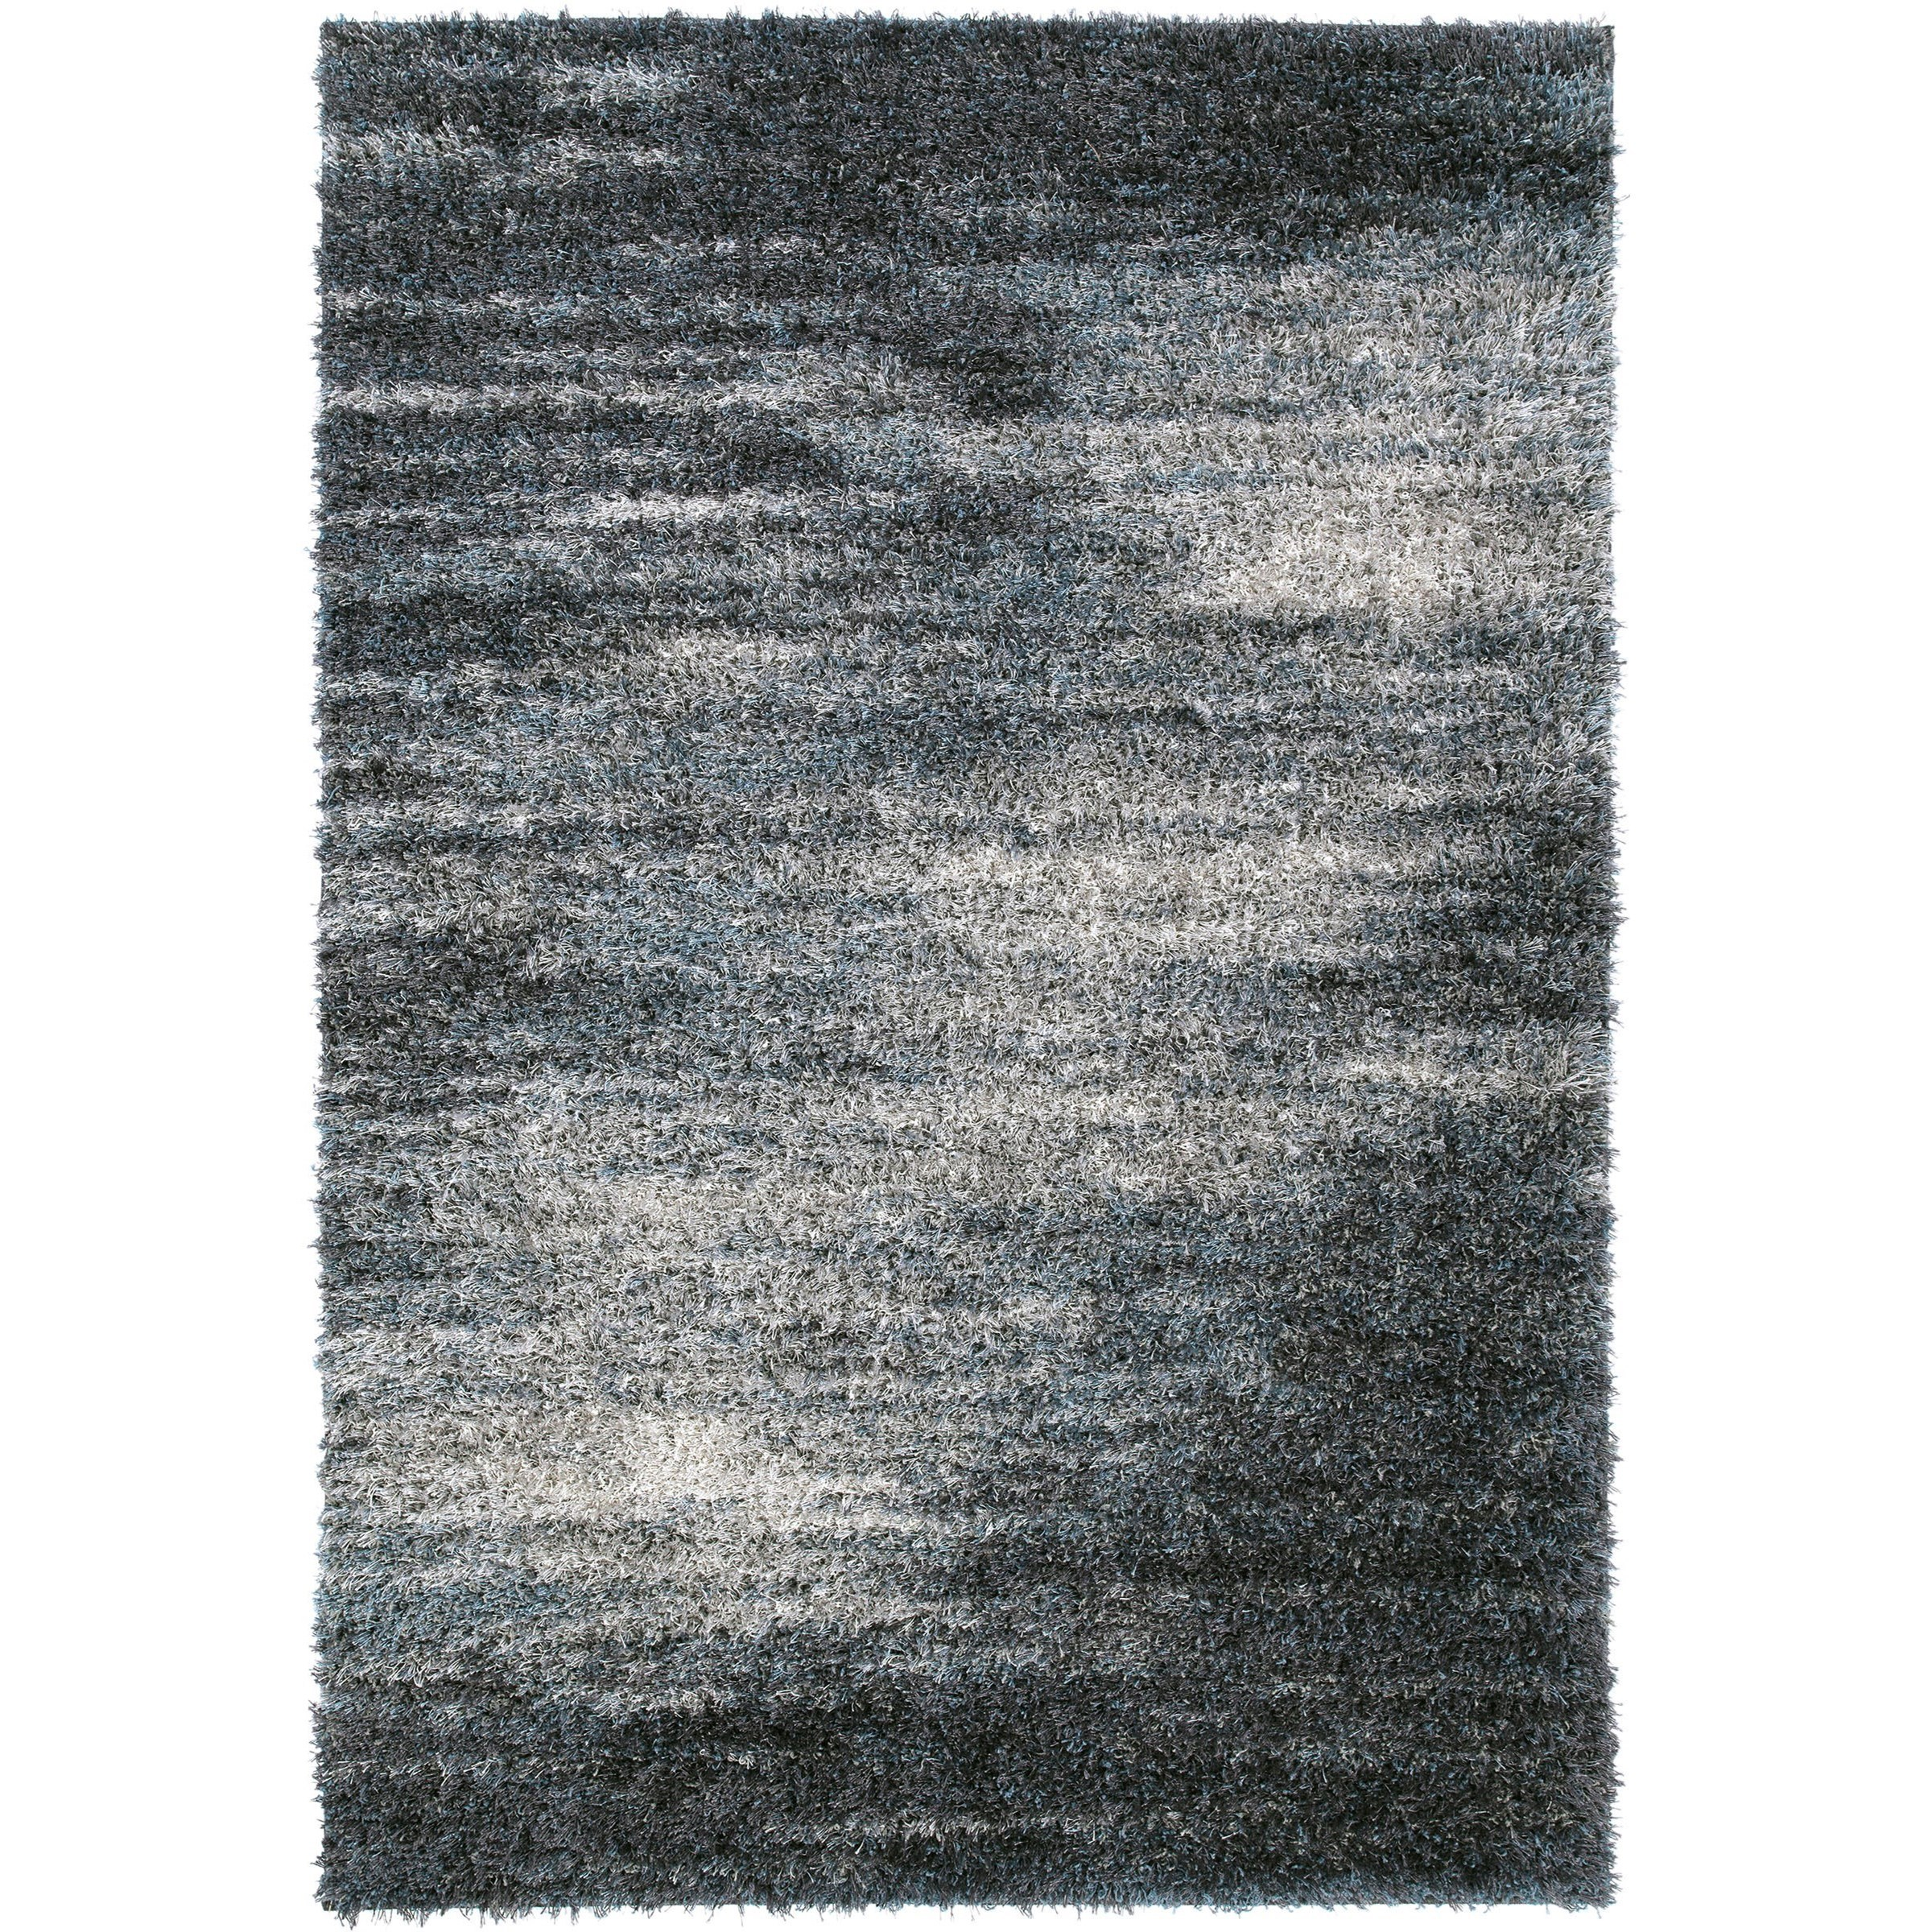 """Arturro Charcoal 5'3""""X7'7"""" Rug by Dalyn at Darvin Furniture"""